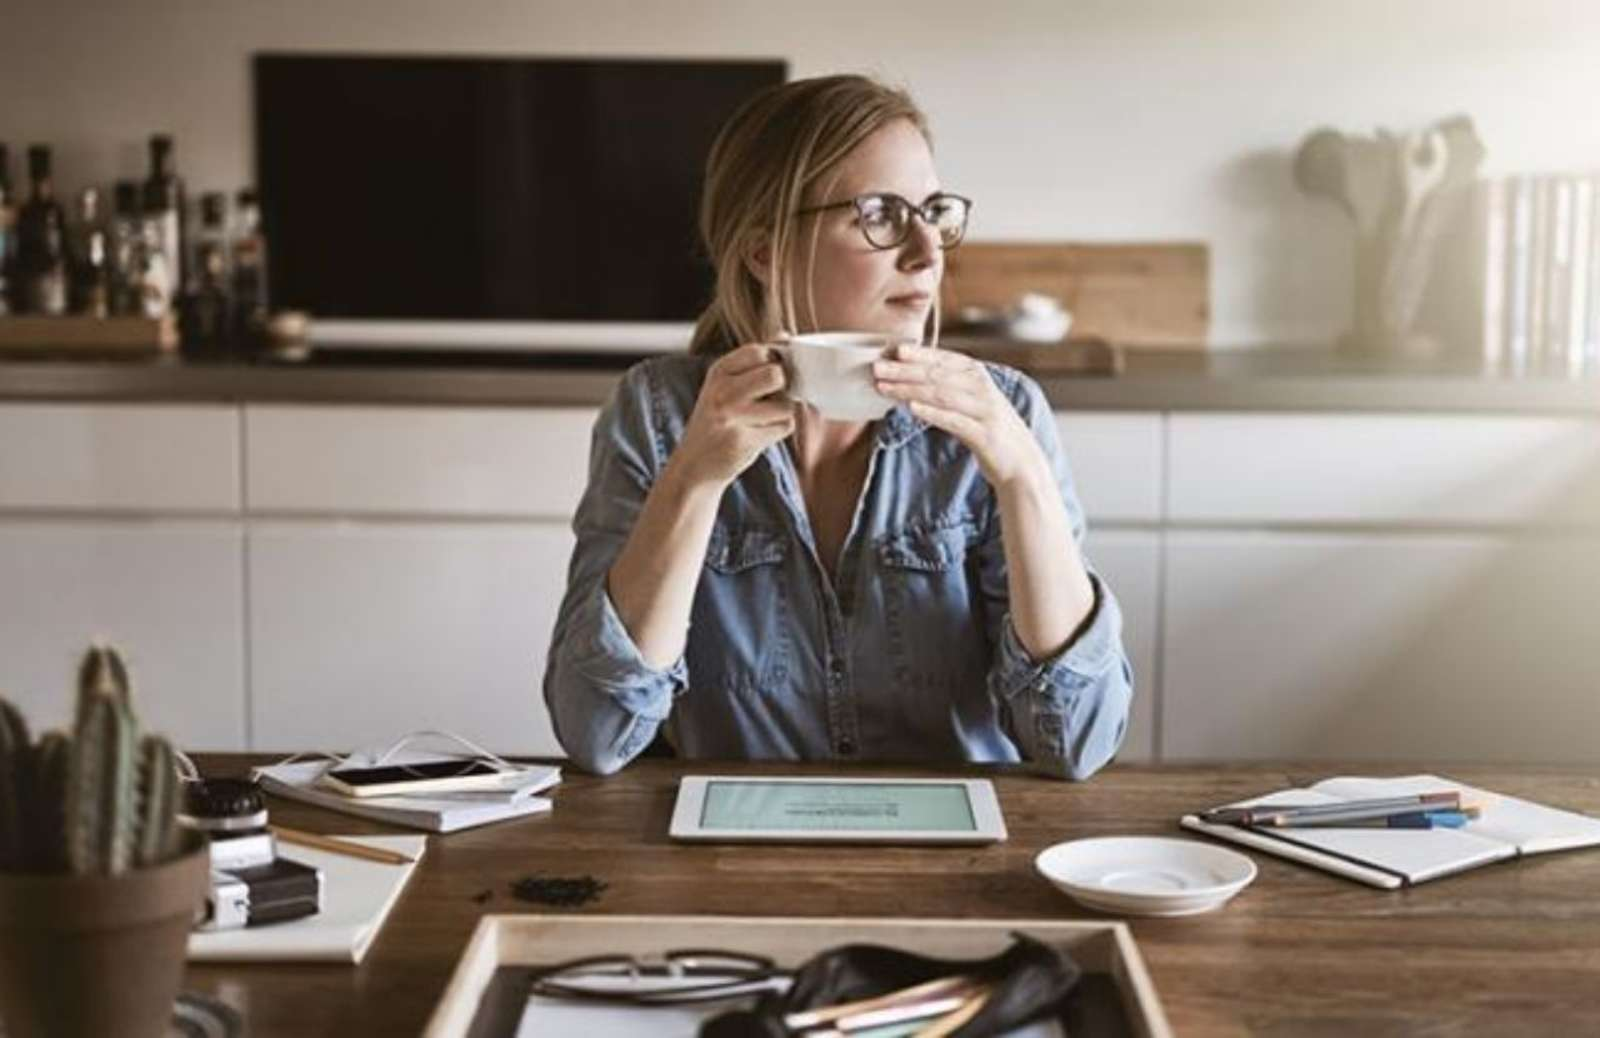 Woman sitting at desk, holding coffee mug and looking out of the window